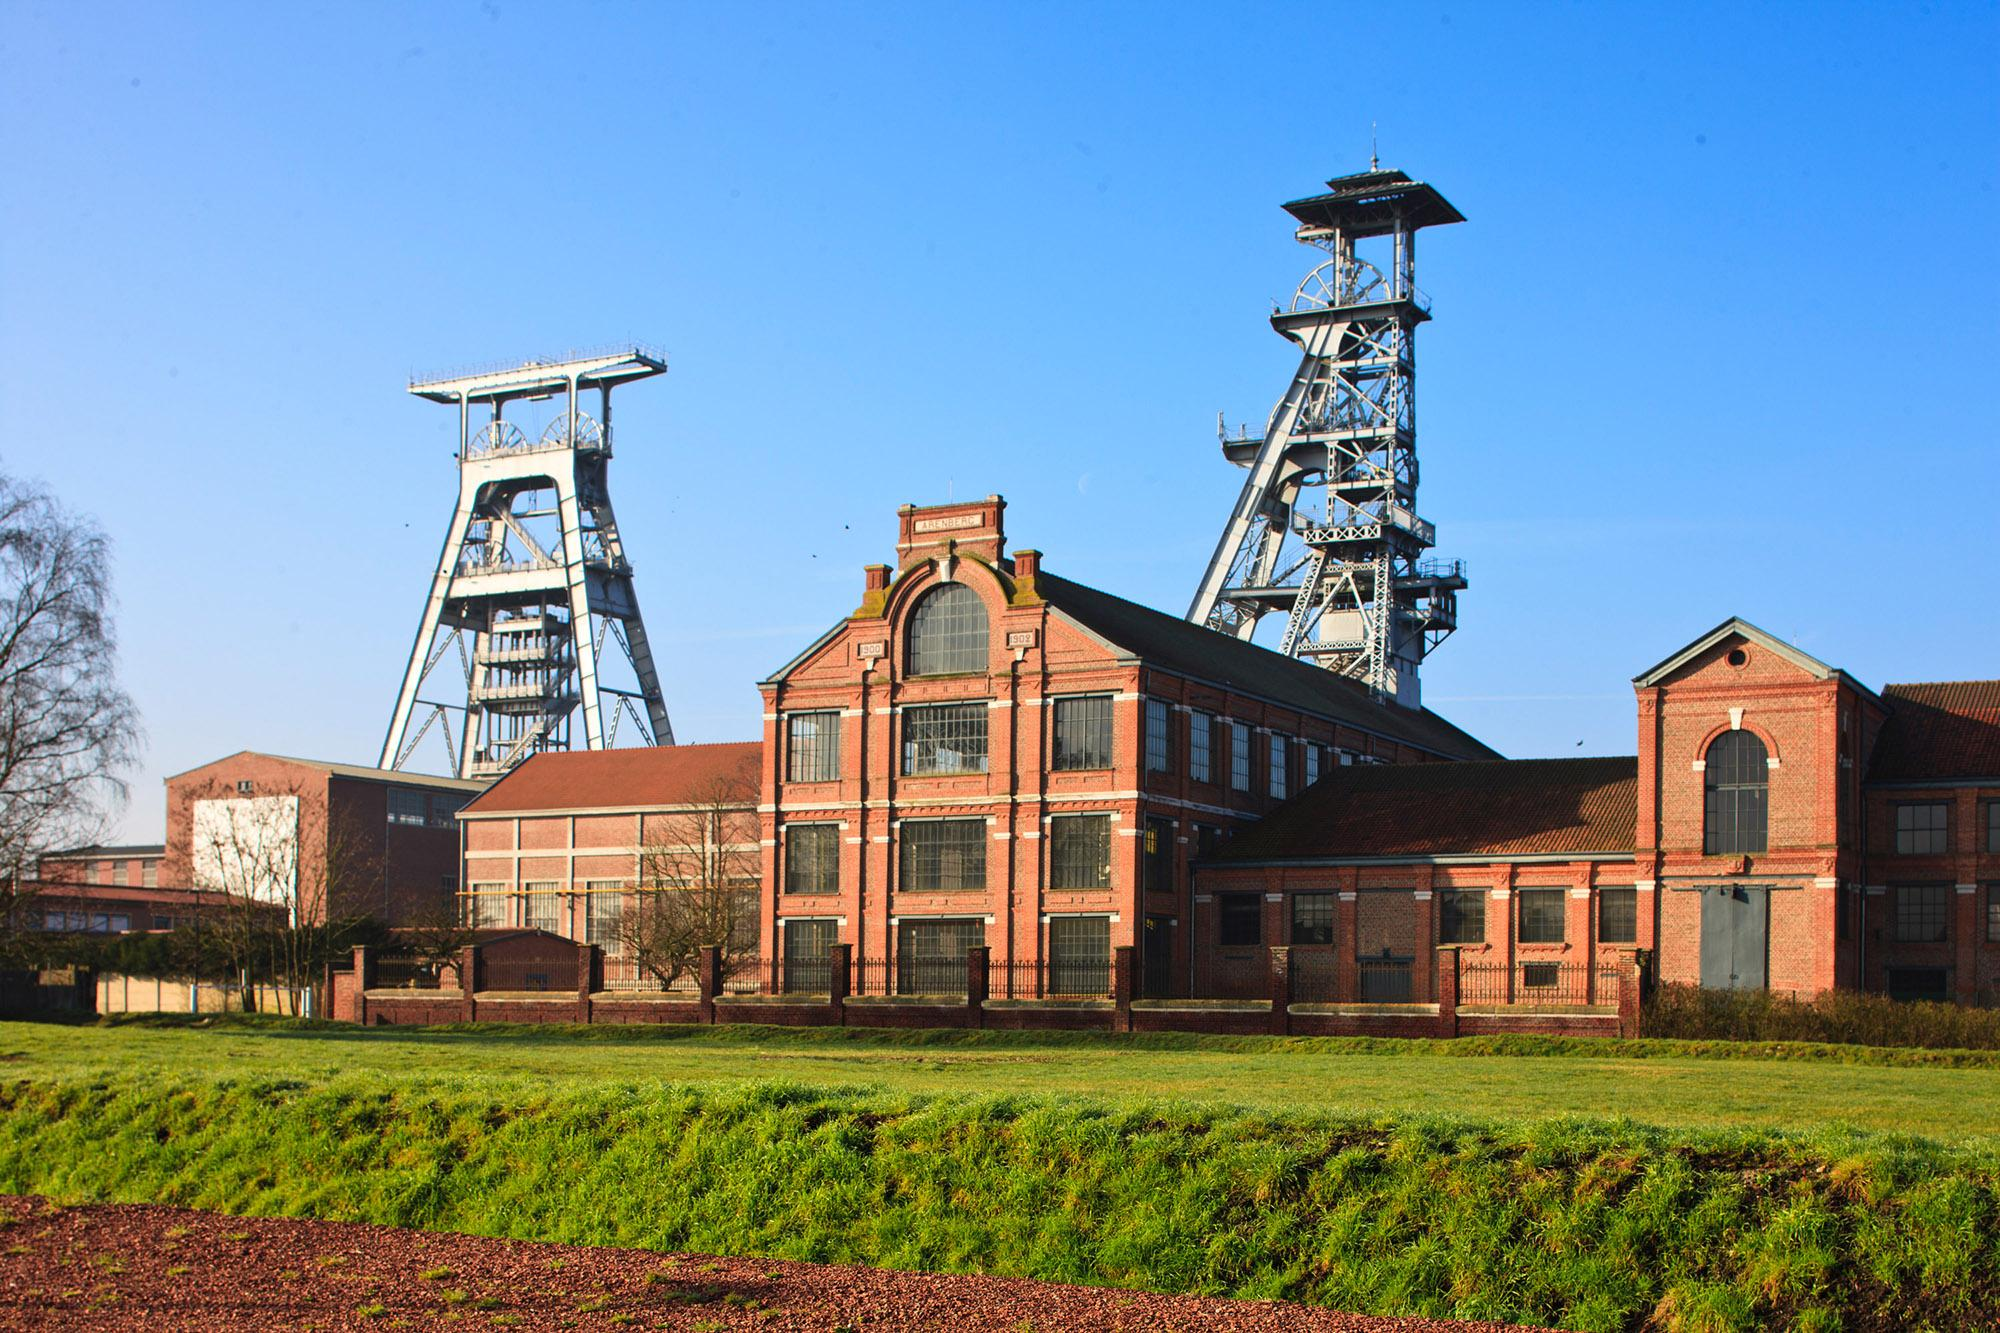 Opened in 1900 by the Anzin Mining Company, the Arenberg Pit in Wallers is a monument to the importance of mining at the dawn of the industrial age. – © Hubert Bouvet / Région Hauts-de-France